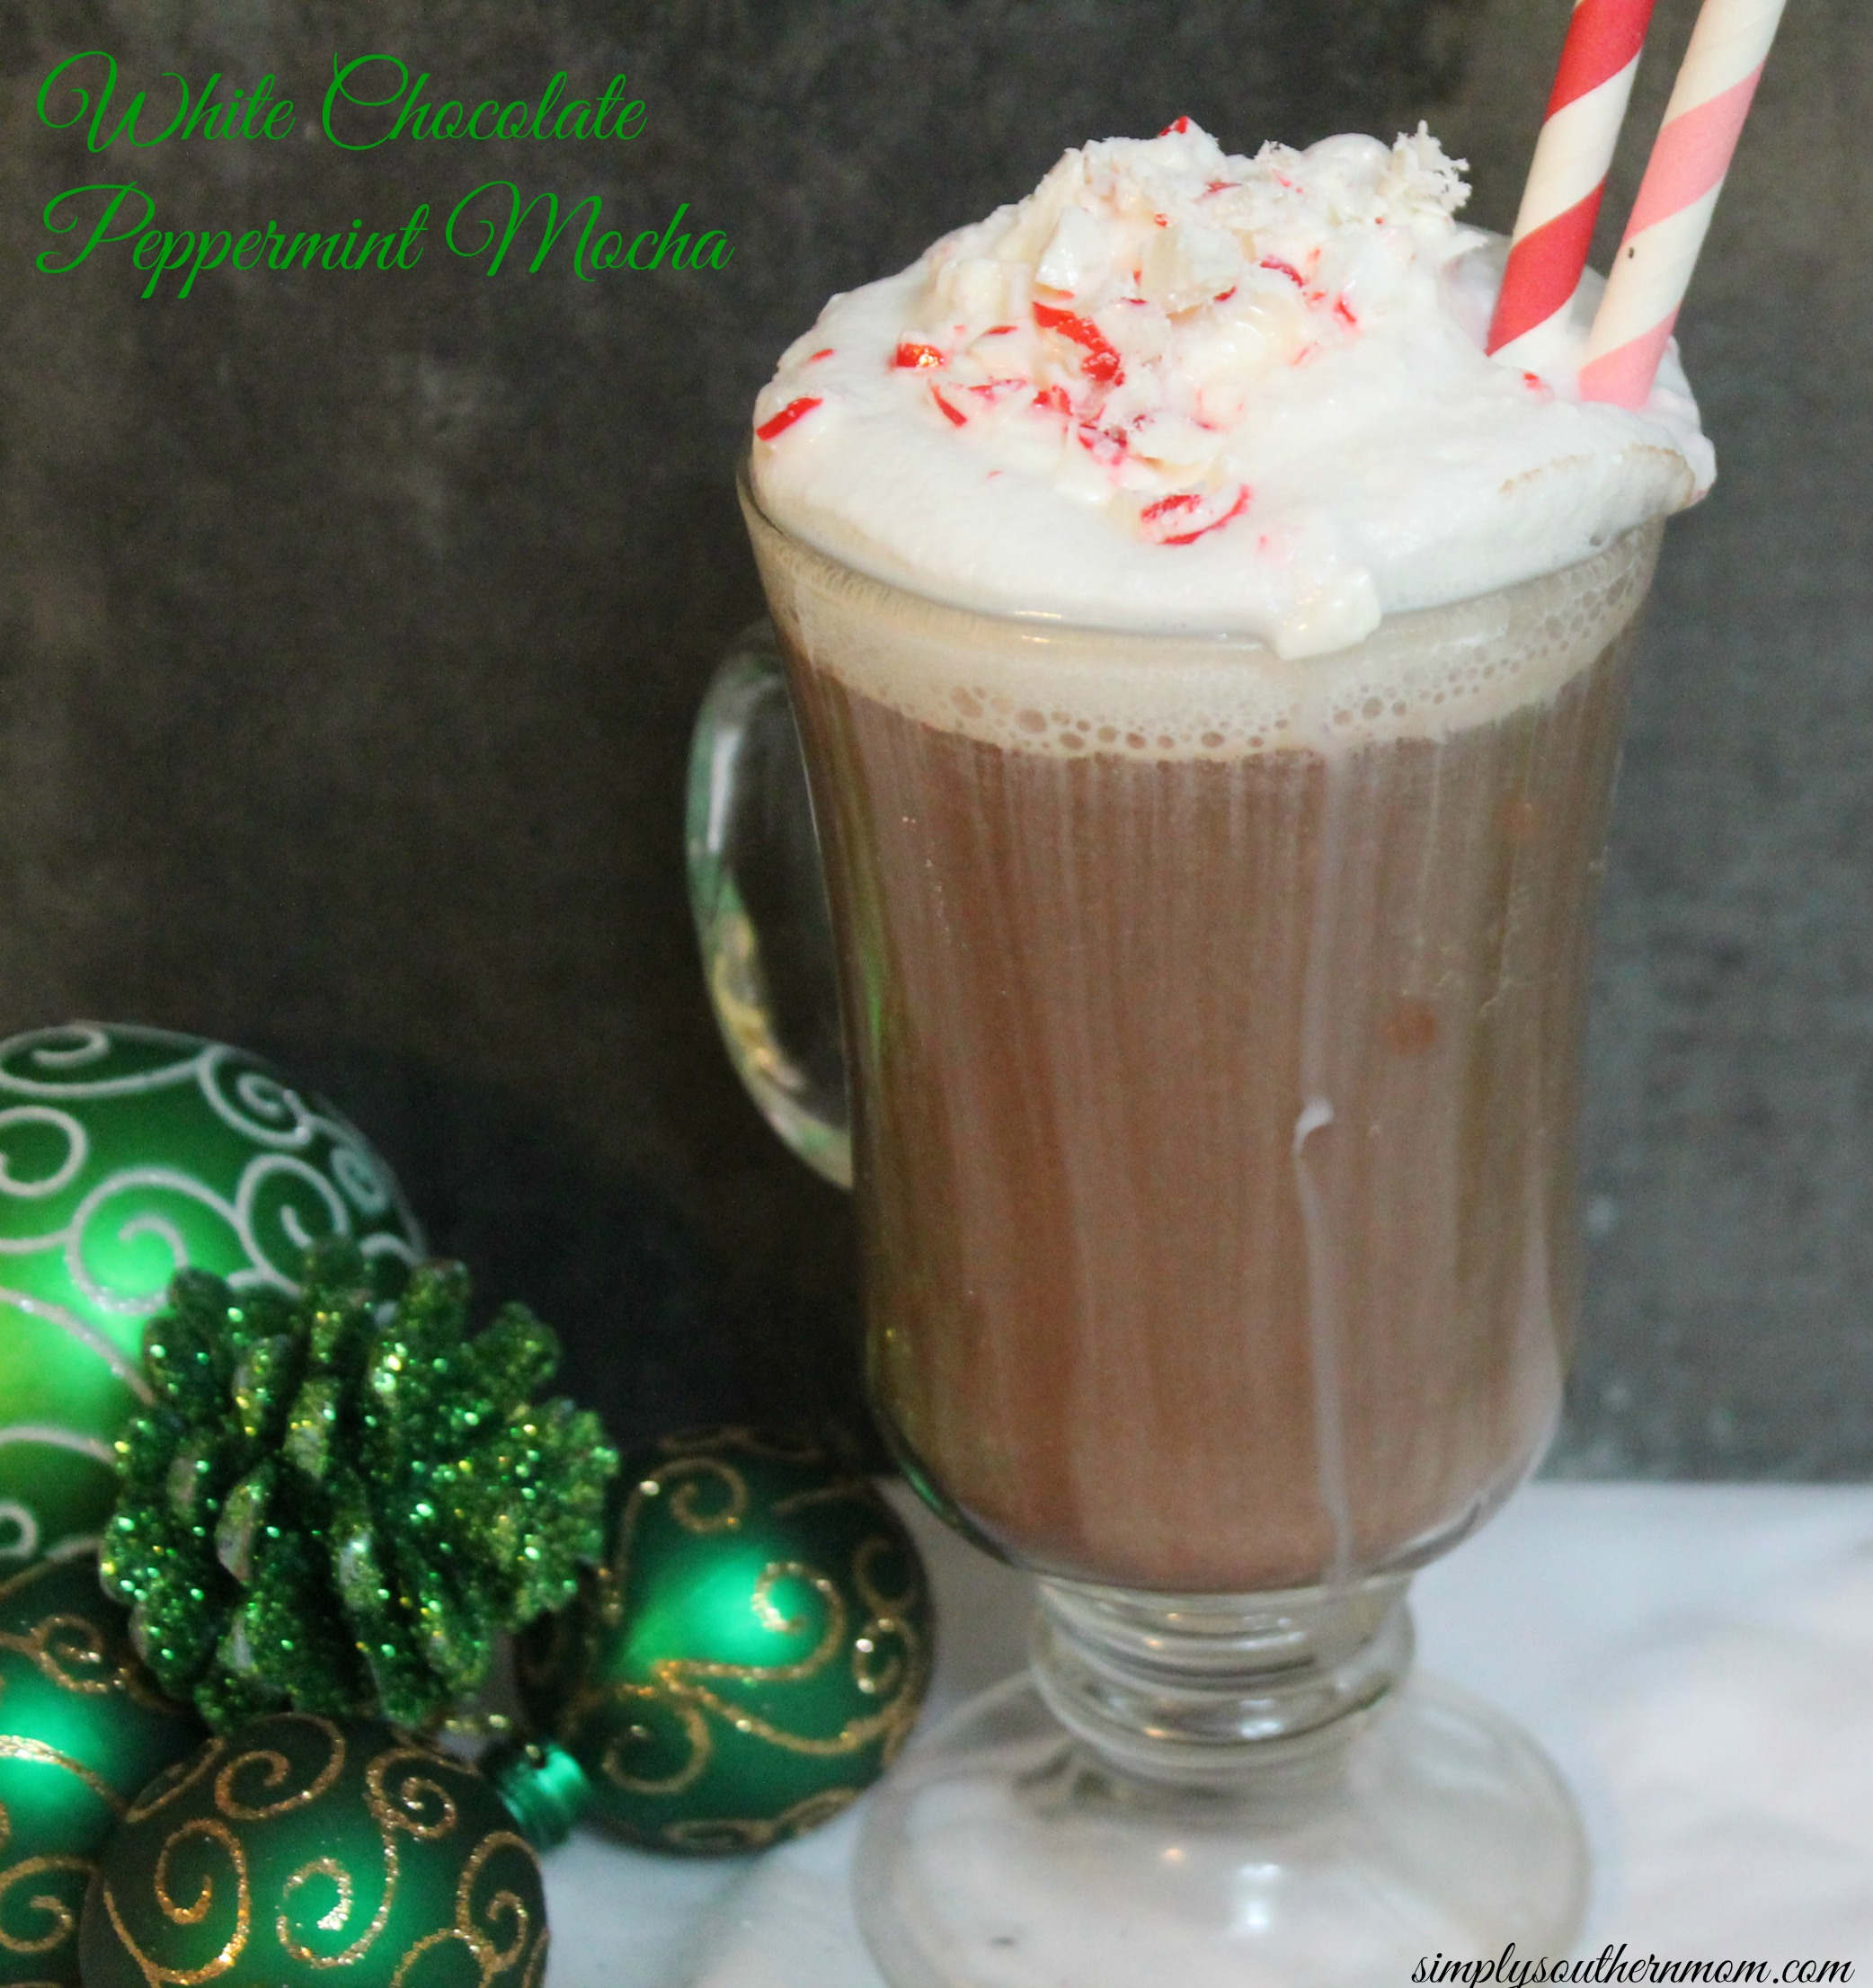 White Chocolate & Peppermint Mocha Coffee Recipe - Simply Southern Mom